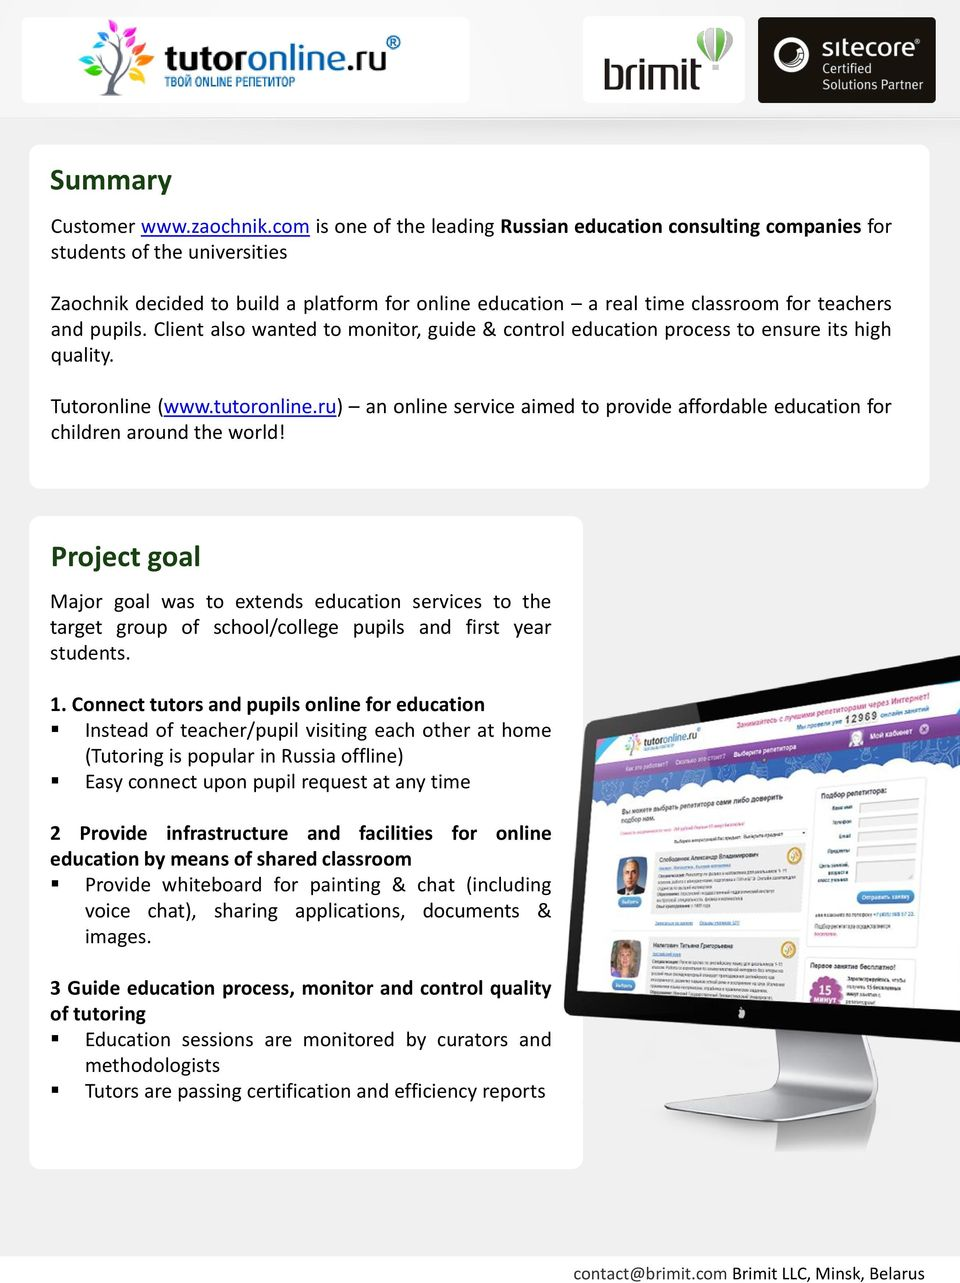 pupils. Client also wanted to monitor, guide & control education process to ensure its high quality. Tutoronline (www.tutoronline.